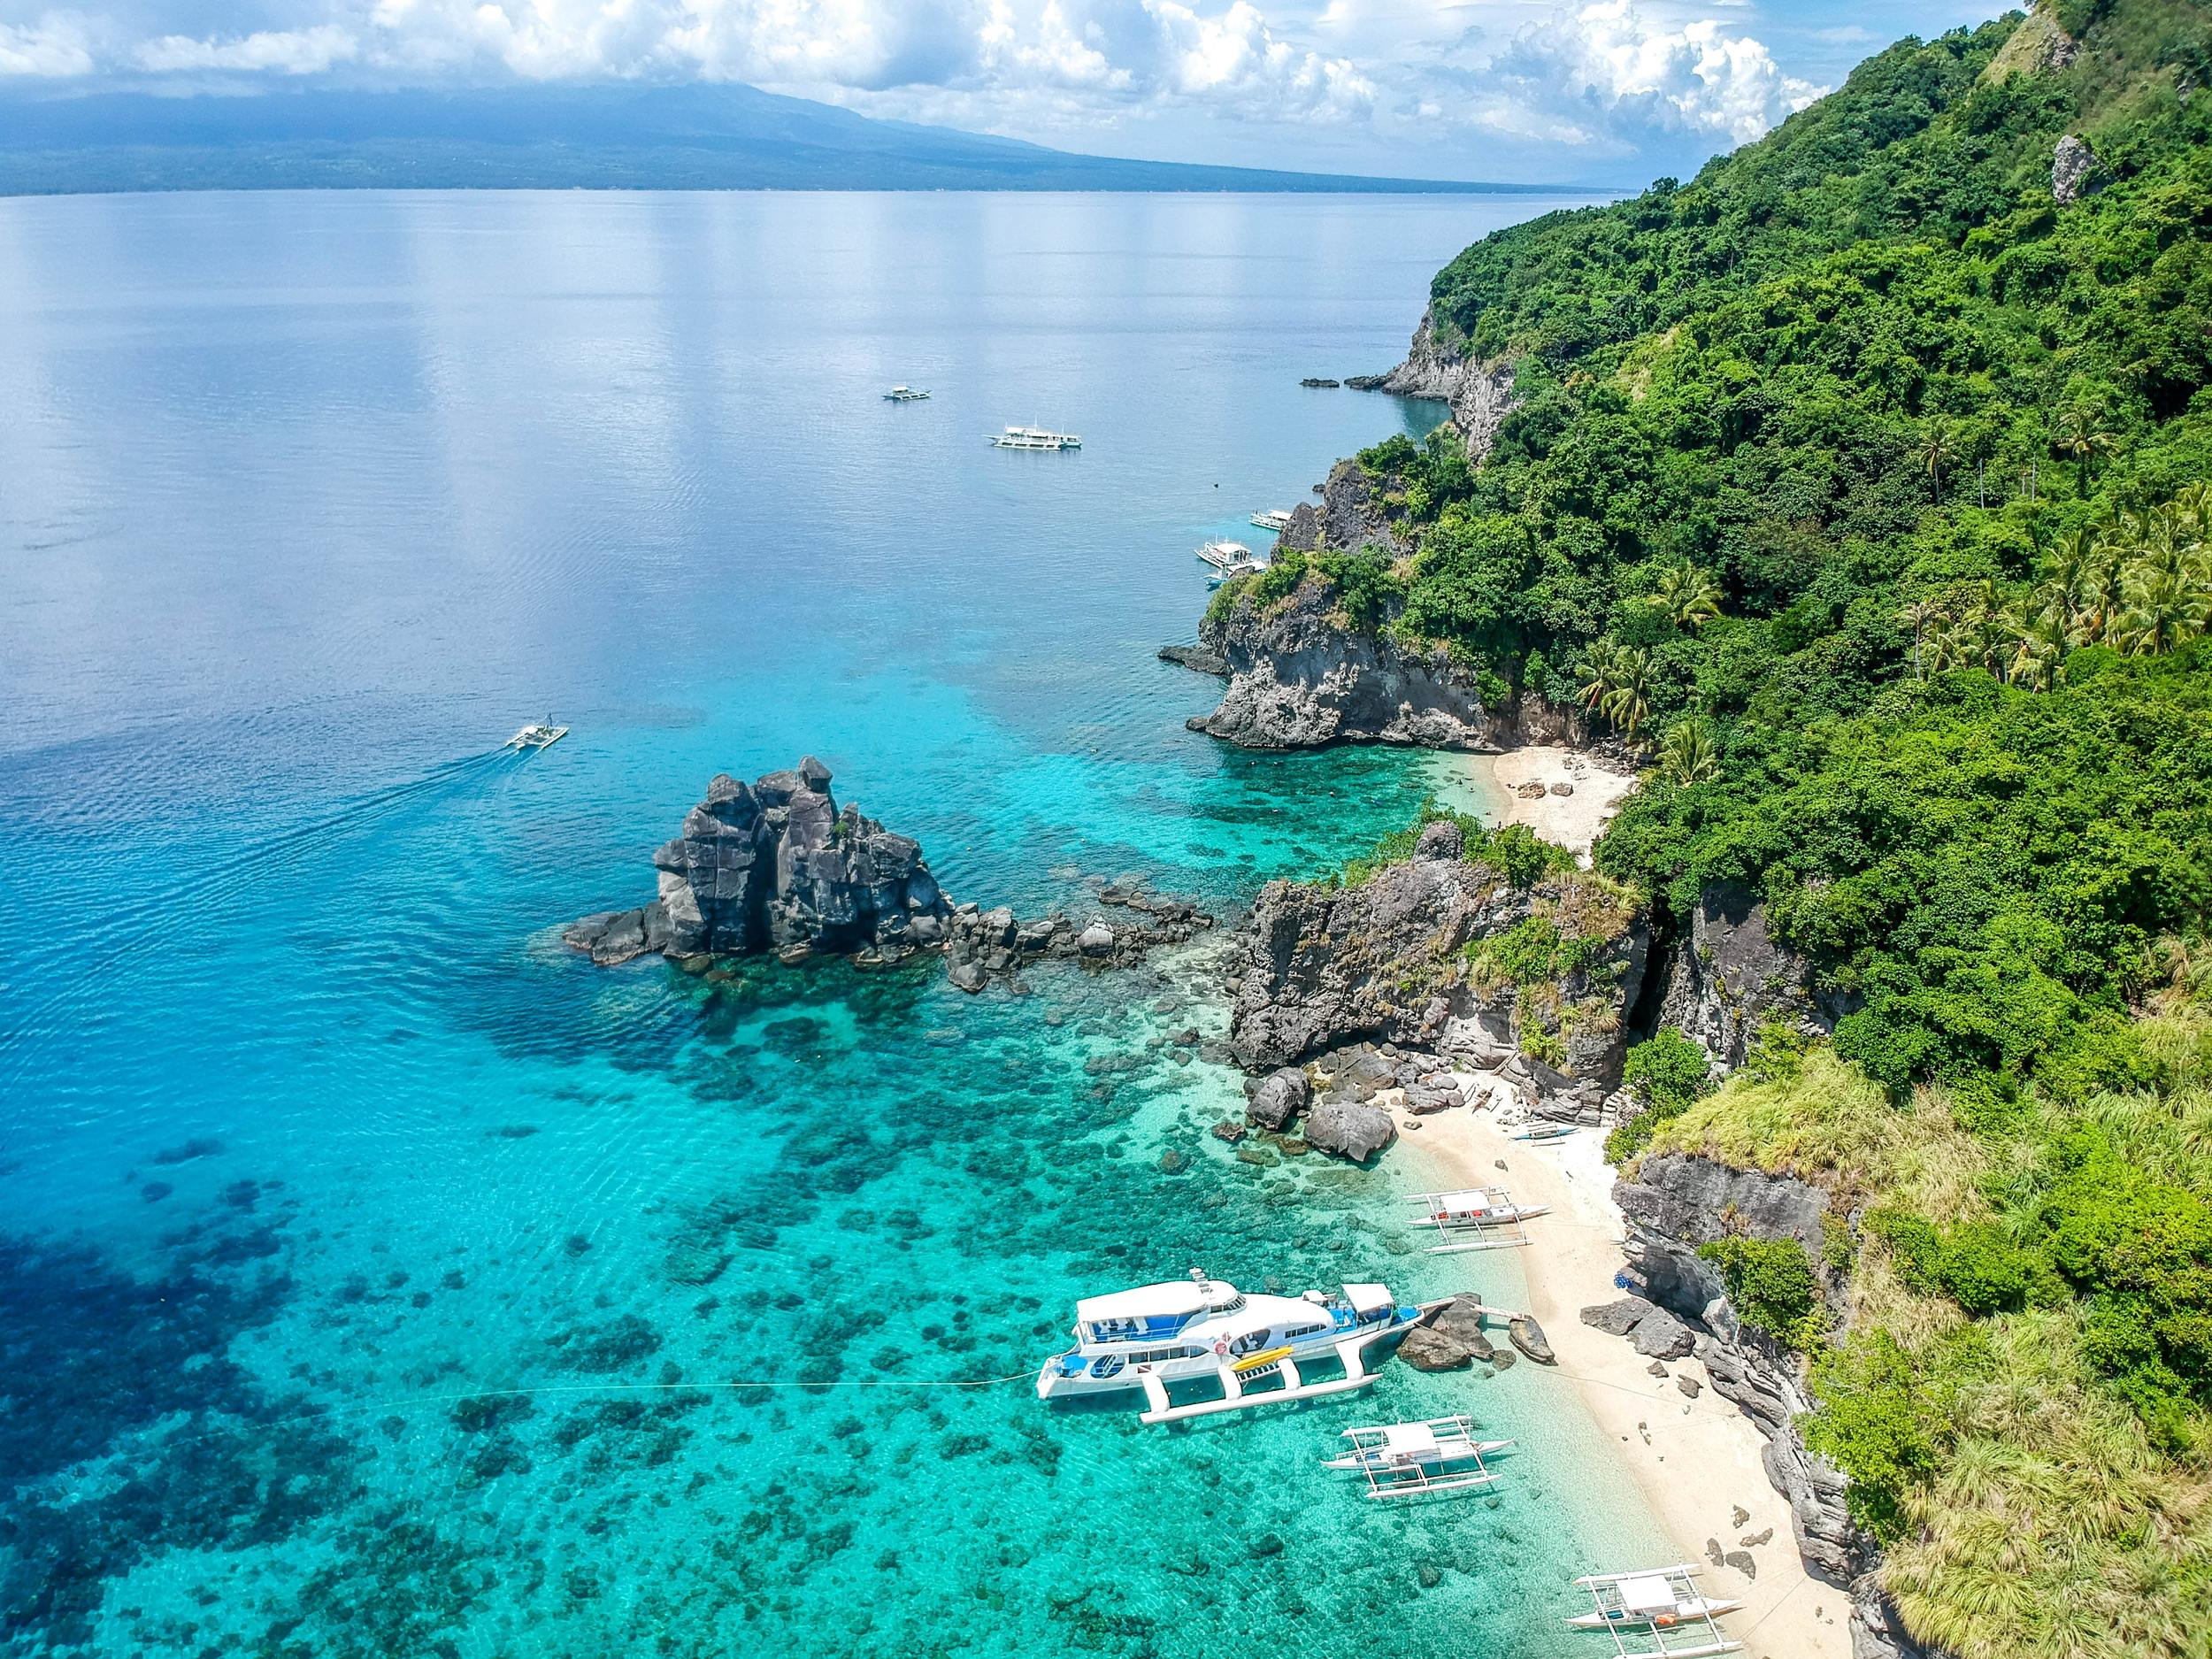 TOP 8 Sailing Destinations To Visit This Fall